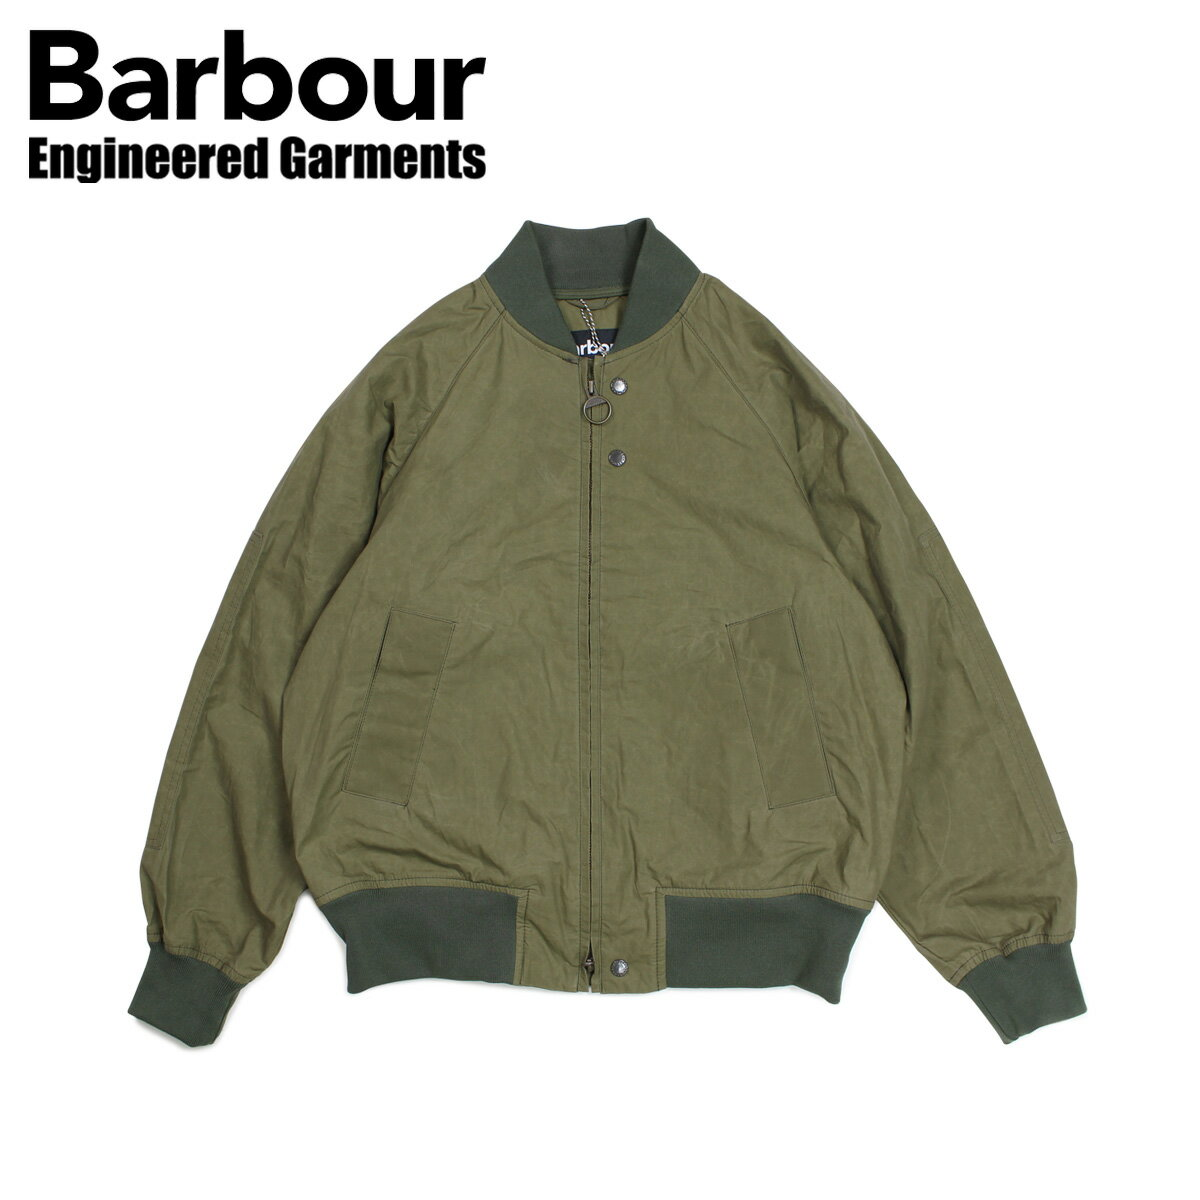 メンズファッション, コート・ジャケット 600OFF Barbour ENGINEERED GARMENTS IRVING JACKET MCA0598GN31